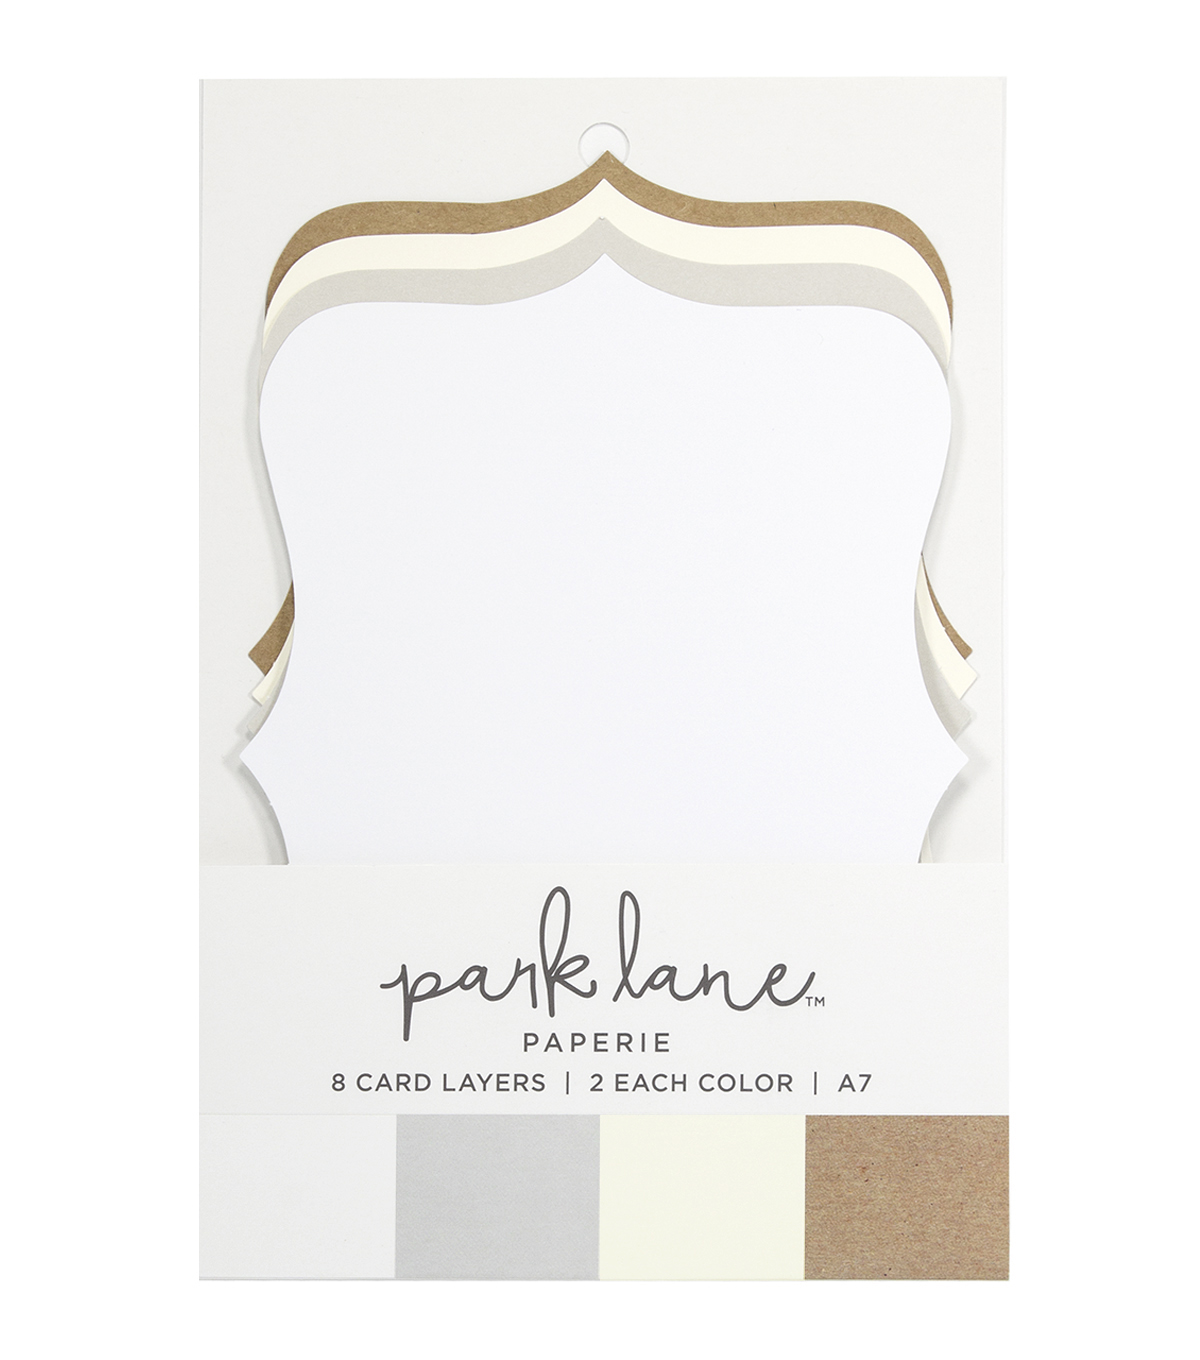 Park Lane 8 pk A7 Cartouche Card Layers